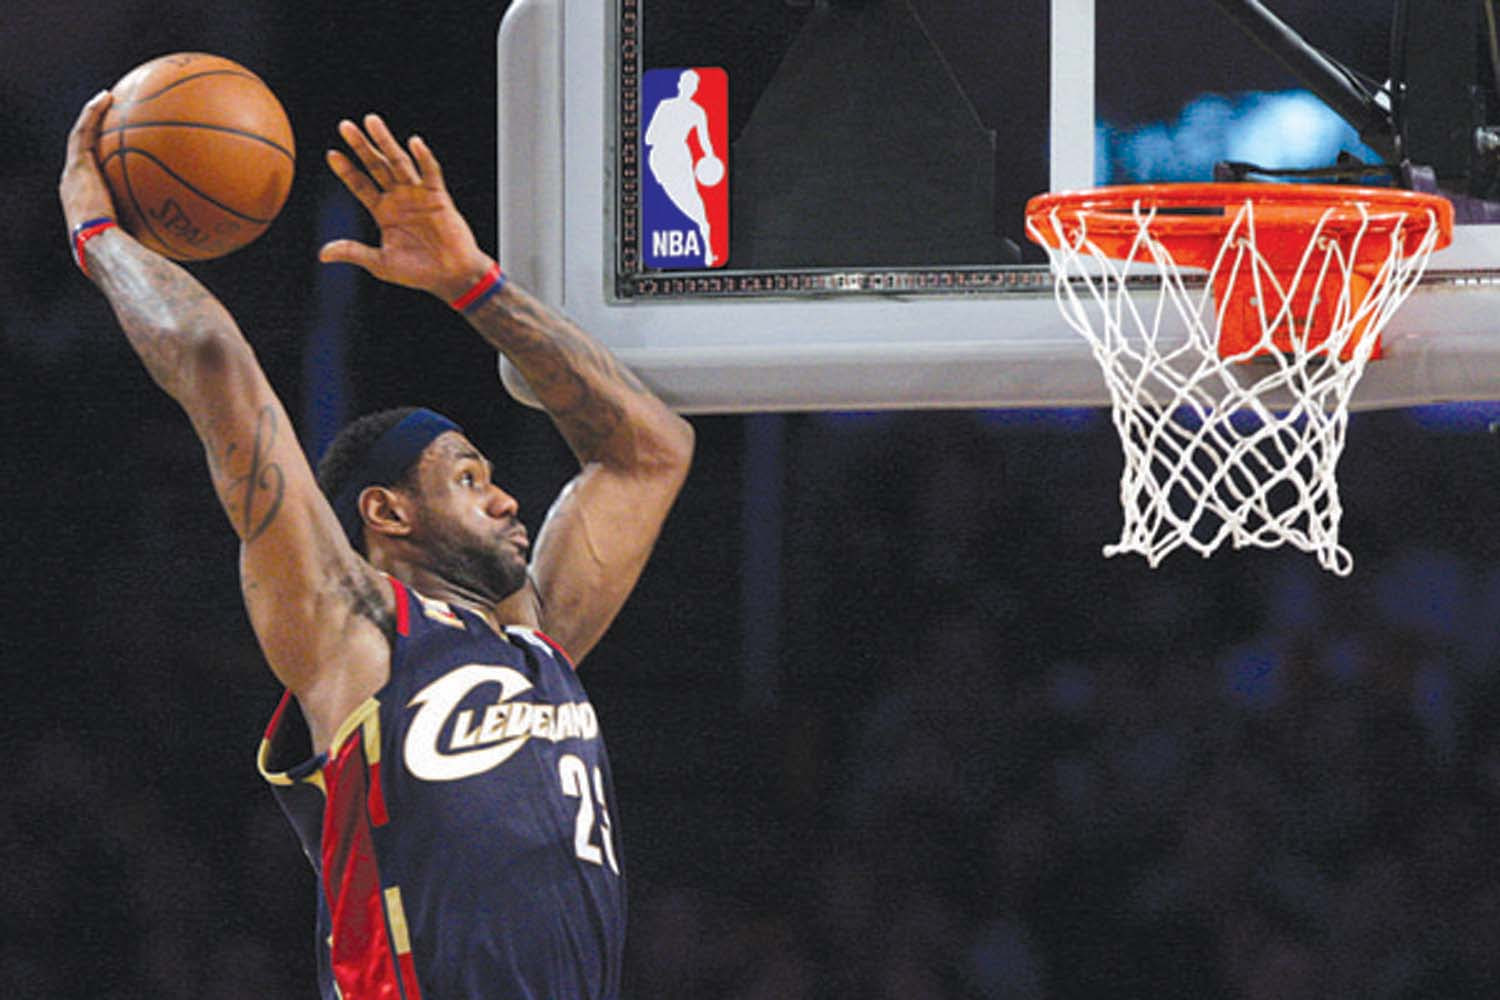 LeBron's Top 10 Plays & Dunk Pics with the Cleveland Cavs ...